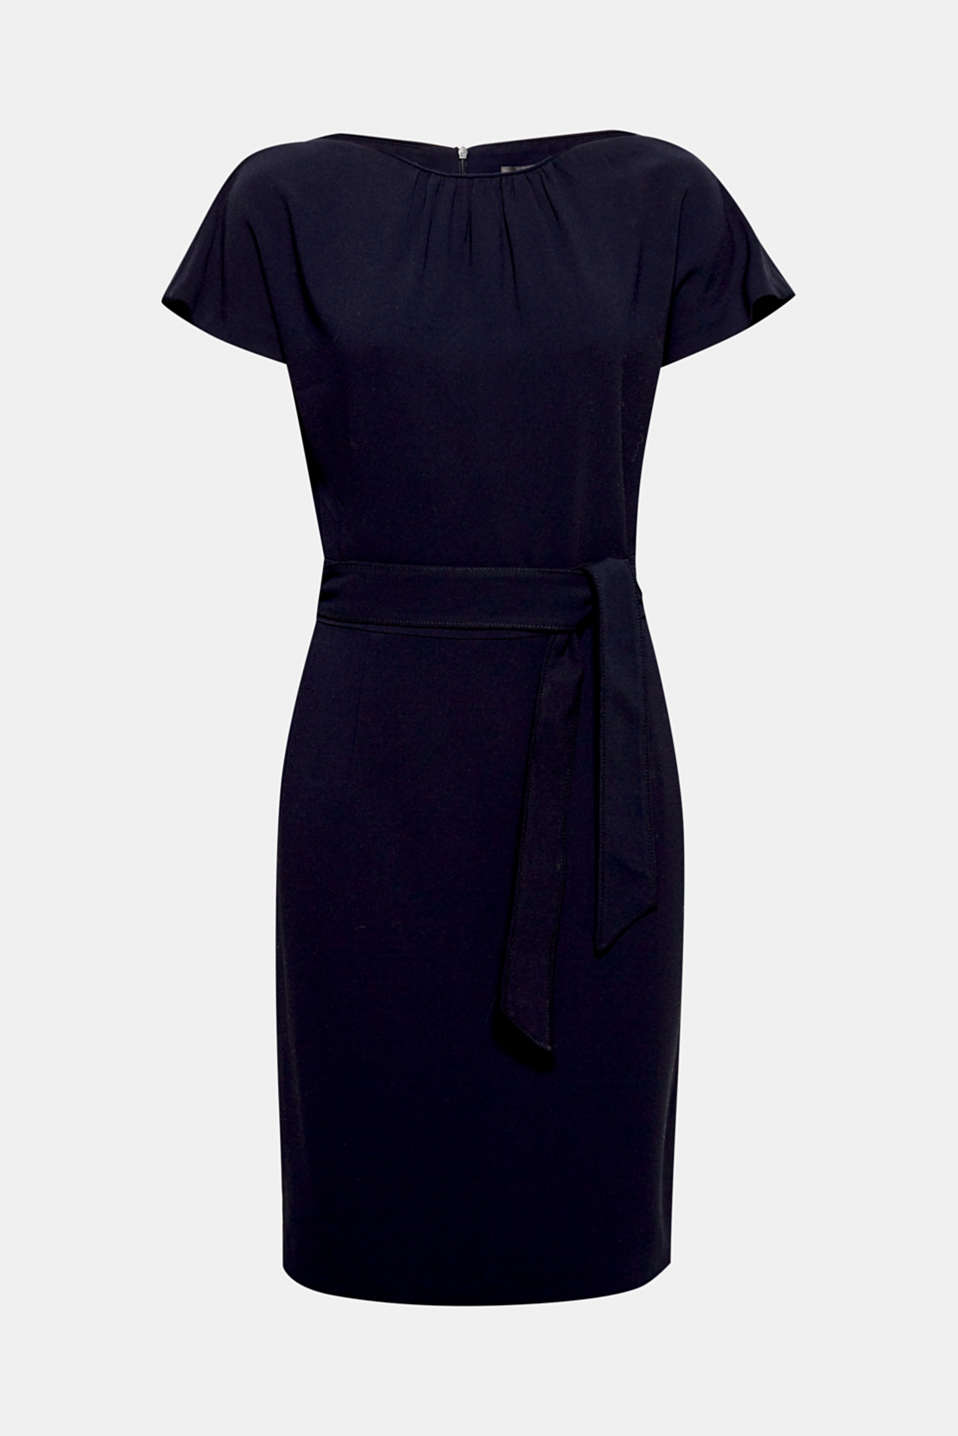 Moderner minimalism! This dress owes its elegant look to the pared back design and fine details like a tie-around belt and dropped shoulders.